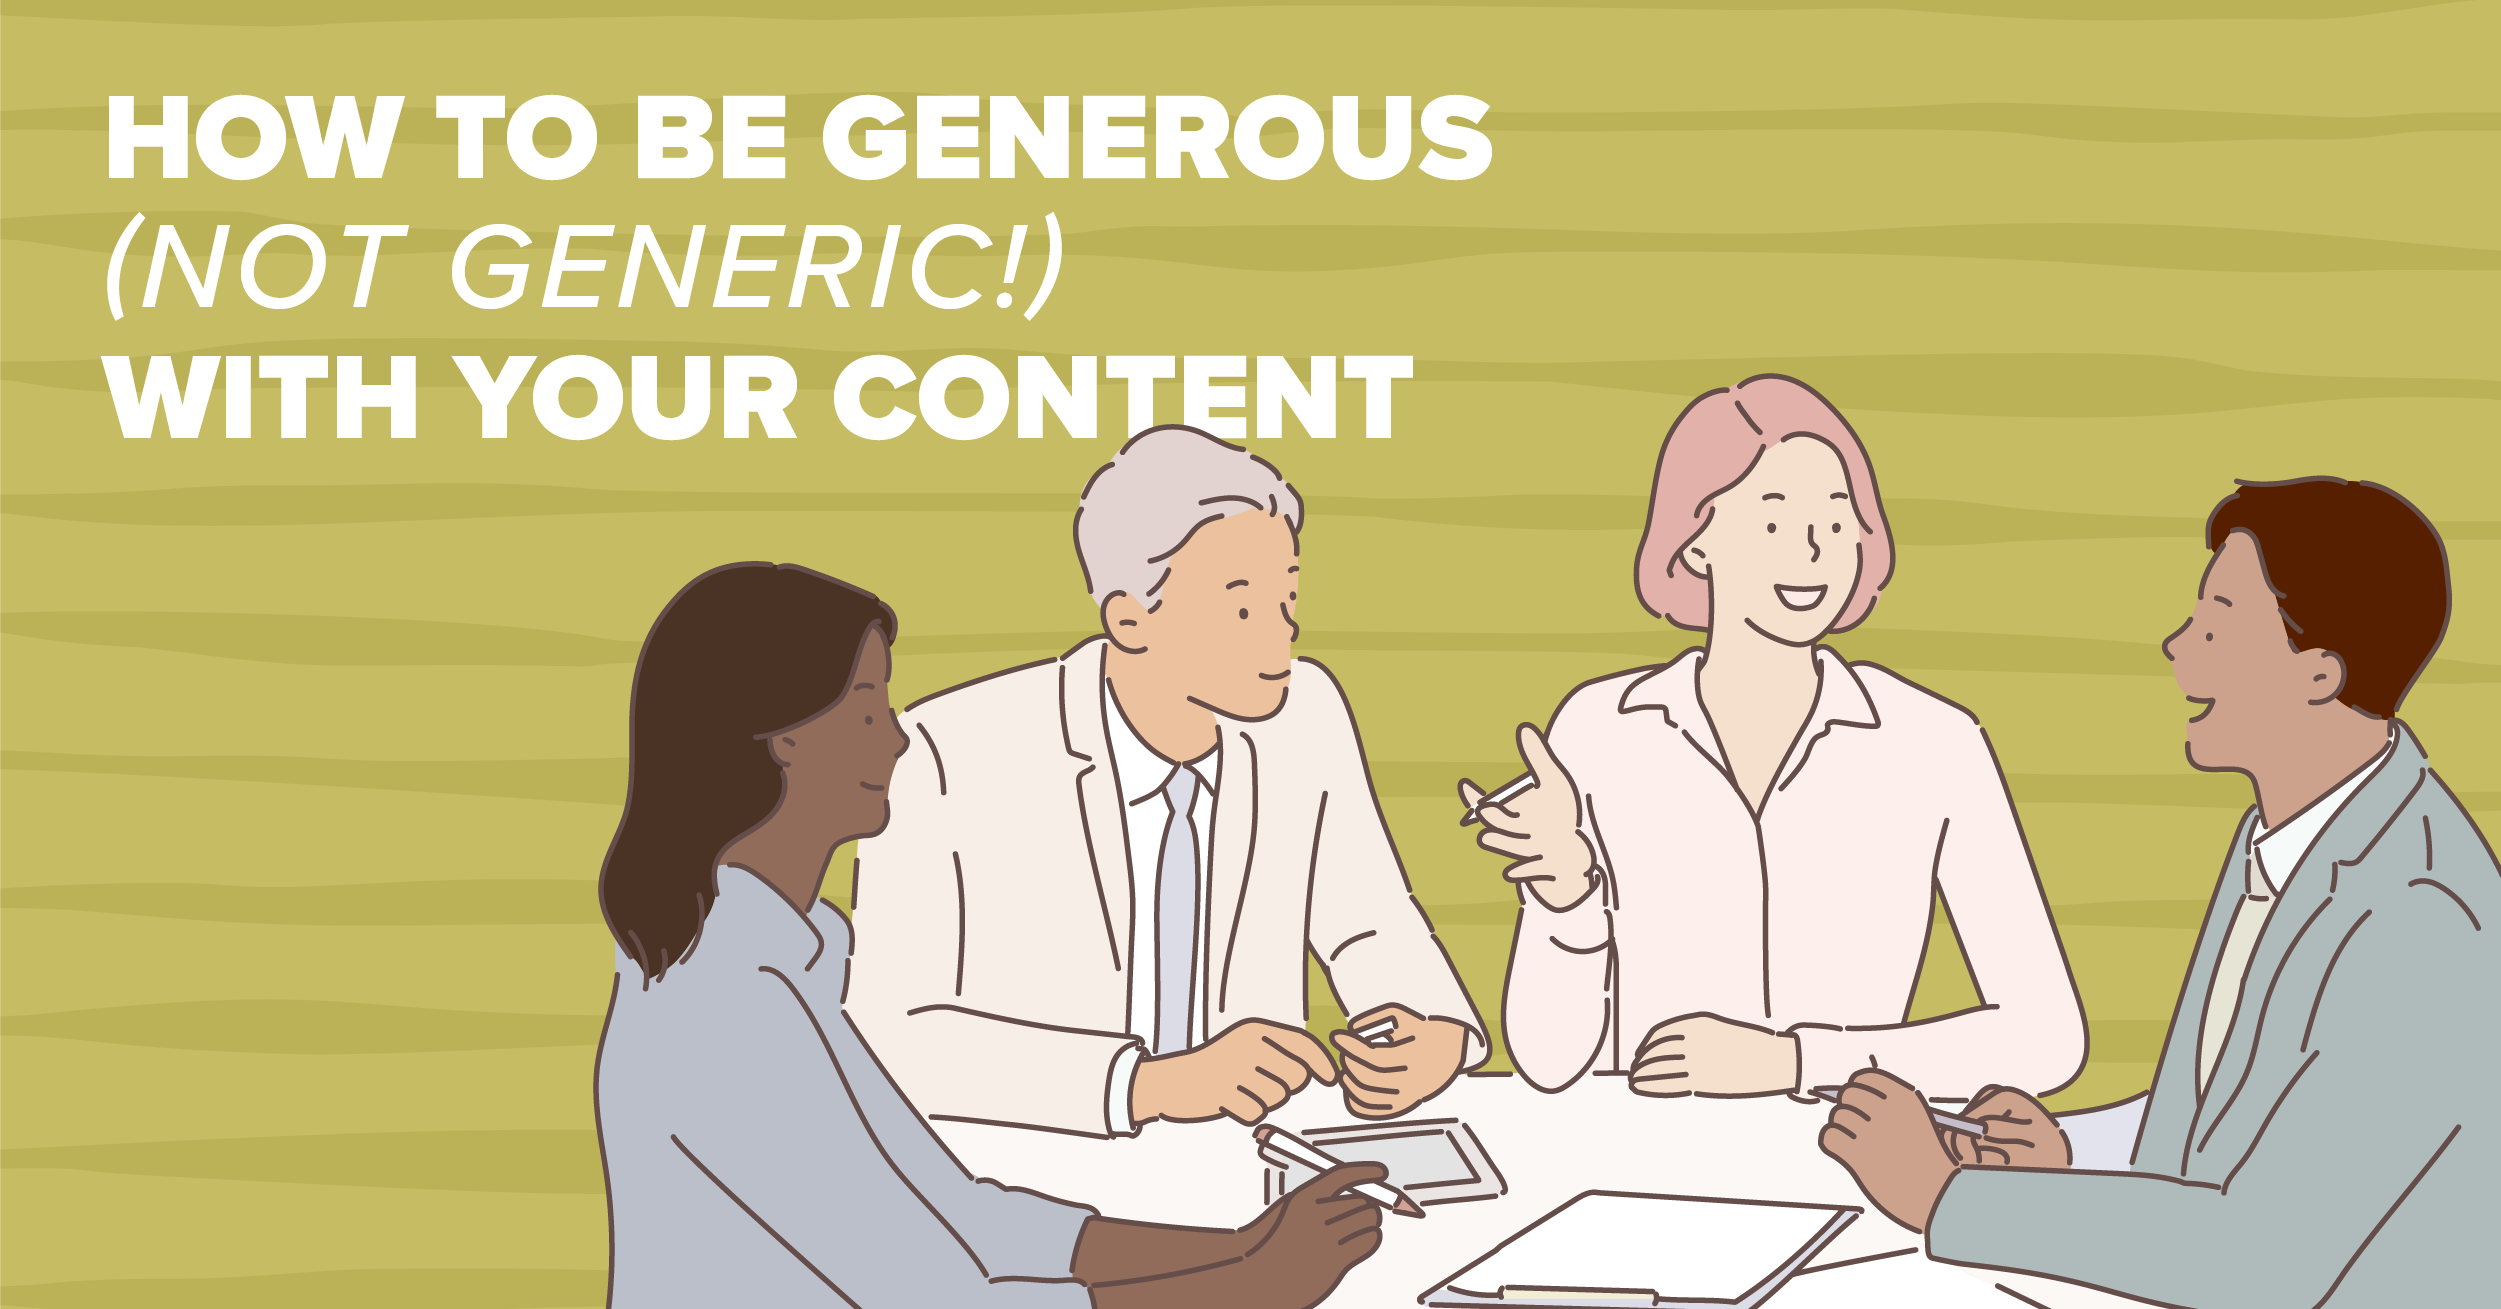 How To Be Generous (Not Generic!) With Your Content